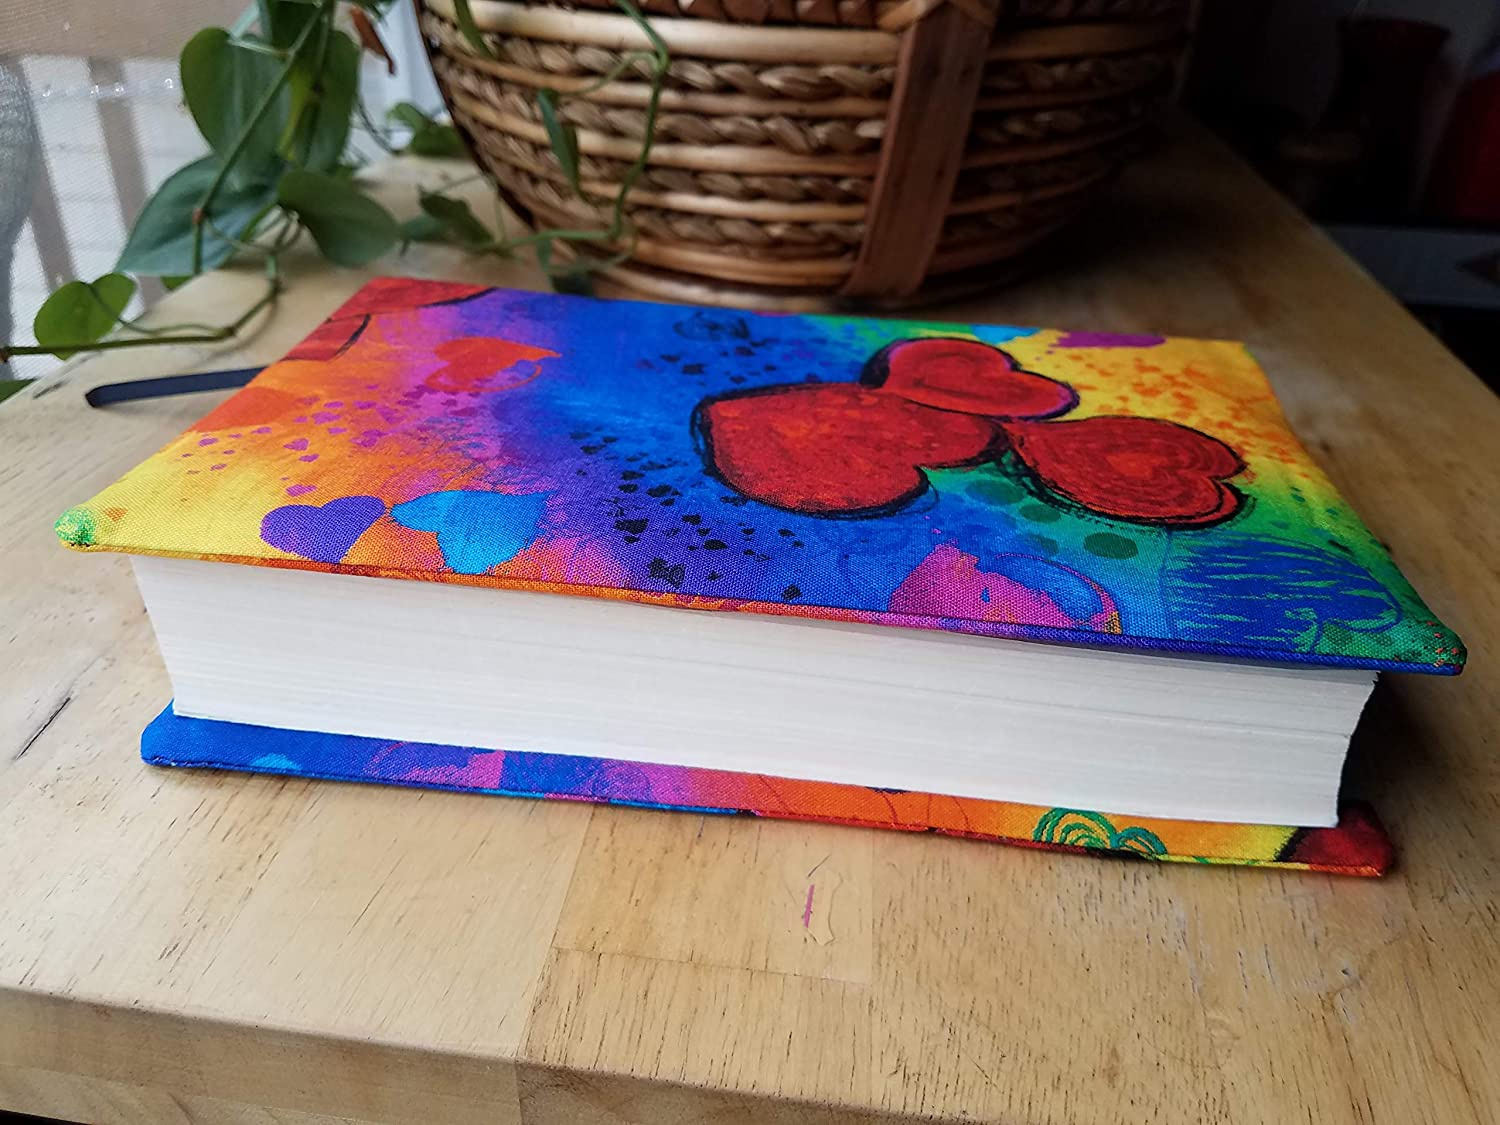 Full Heart Alcoholics Anonymous Big Book Cover